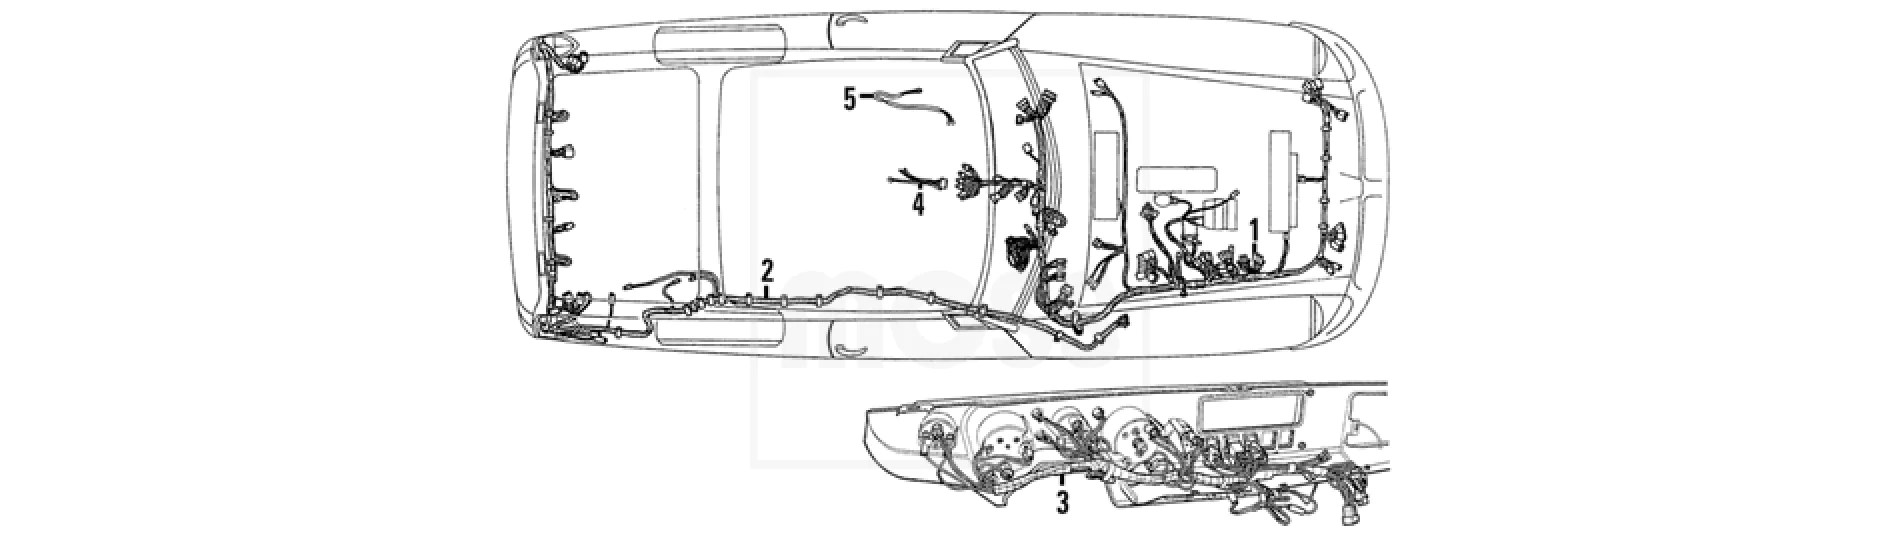 mgb gt wiring harness wiring diagram datasource 1972 mgb wiring harness [ 1900 x 538 Pixel ]